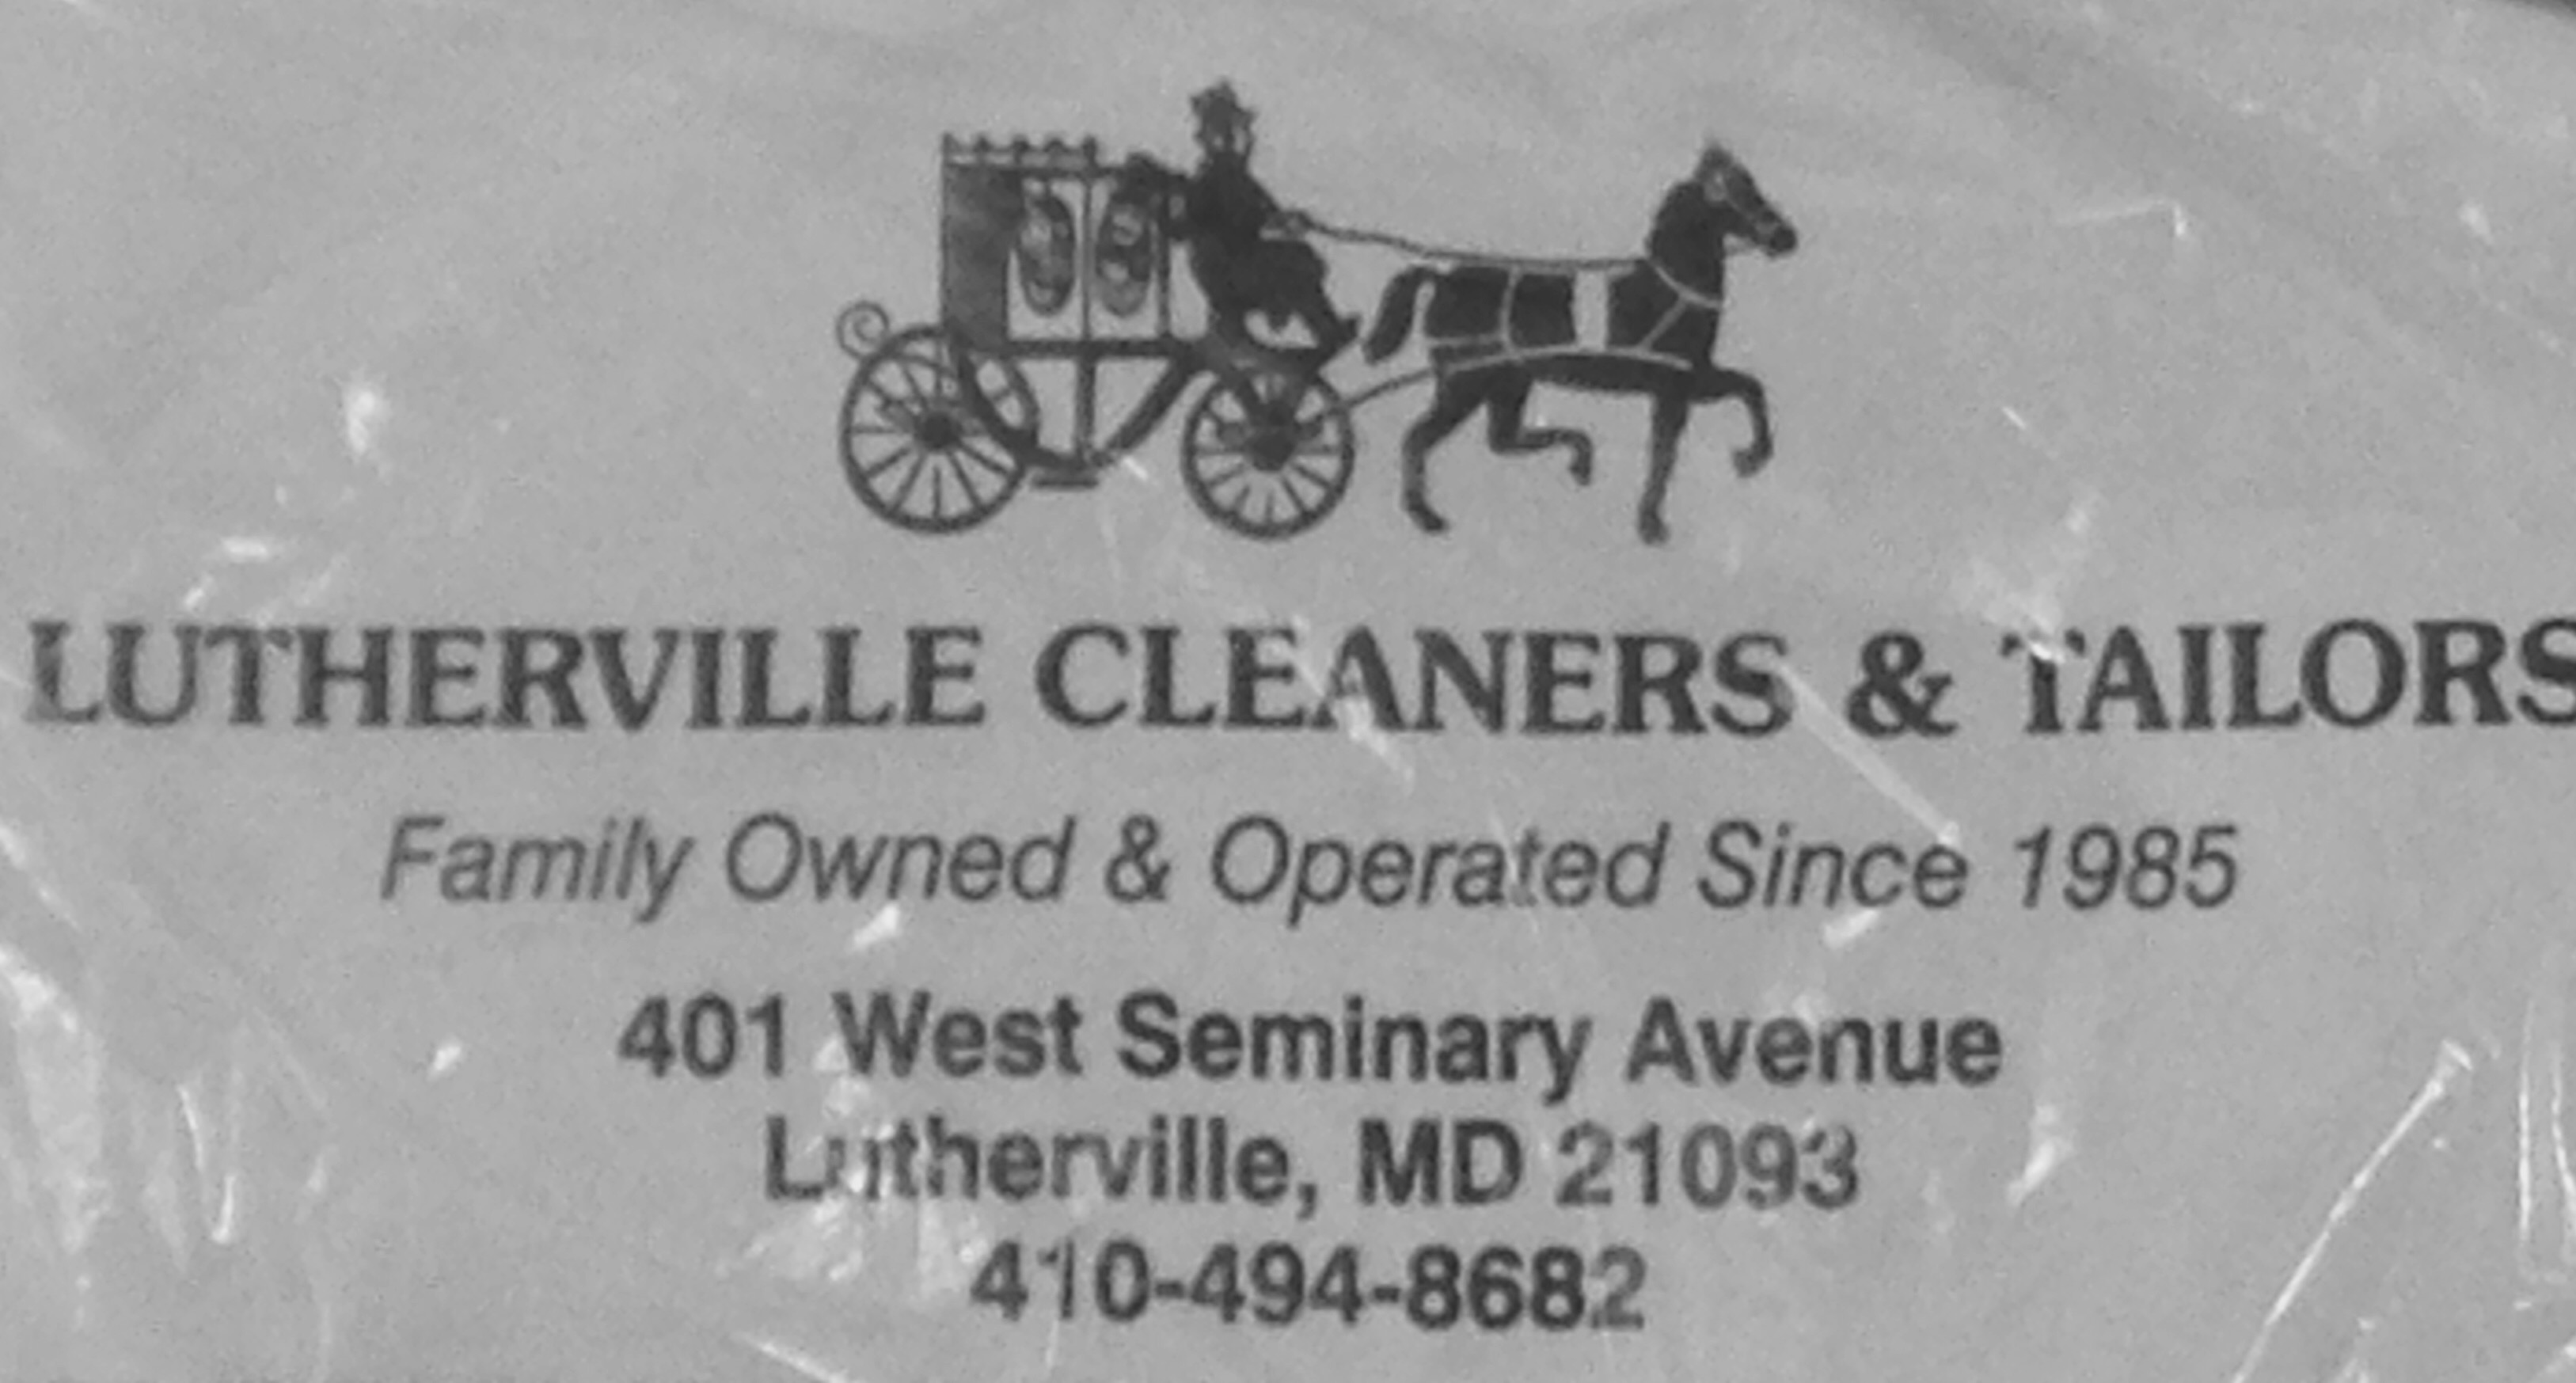 Lutherville Cleaners